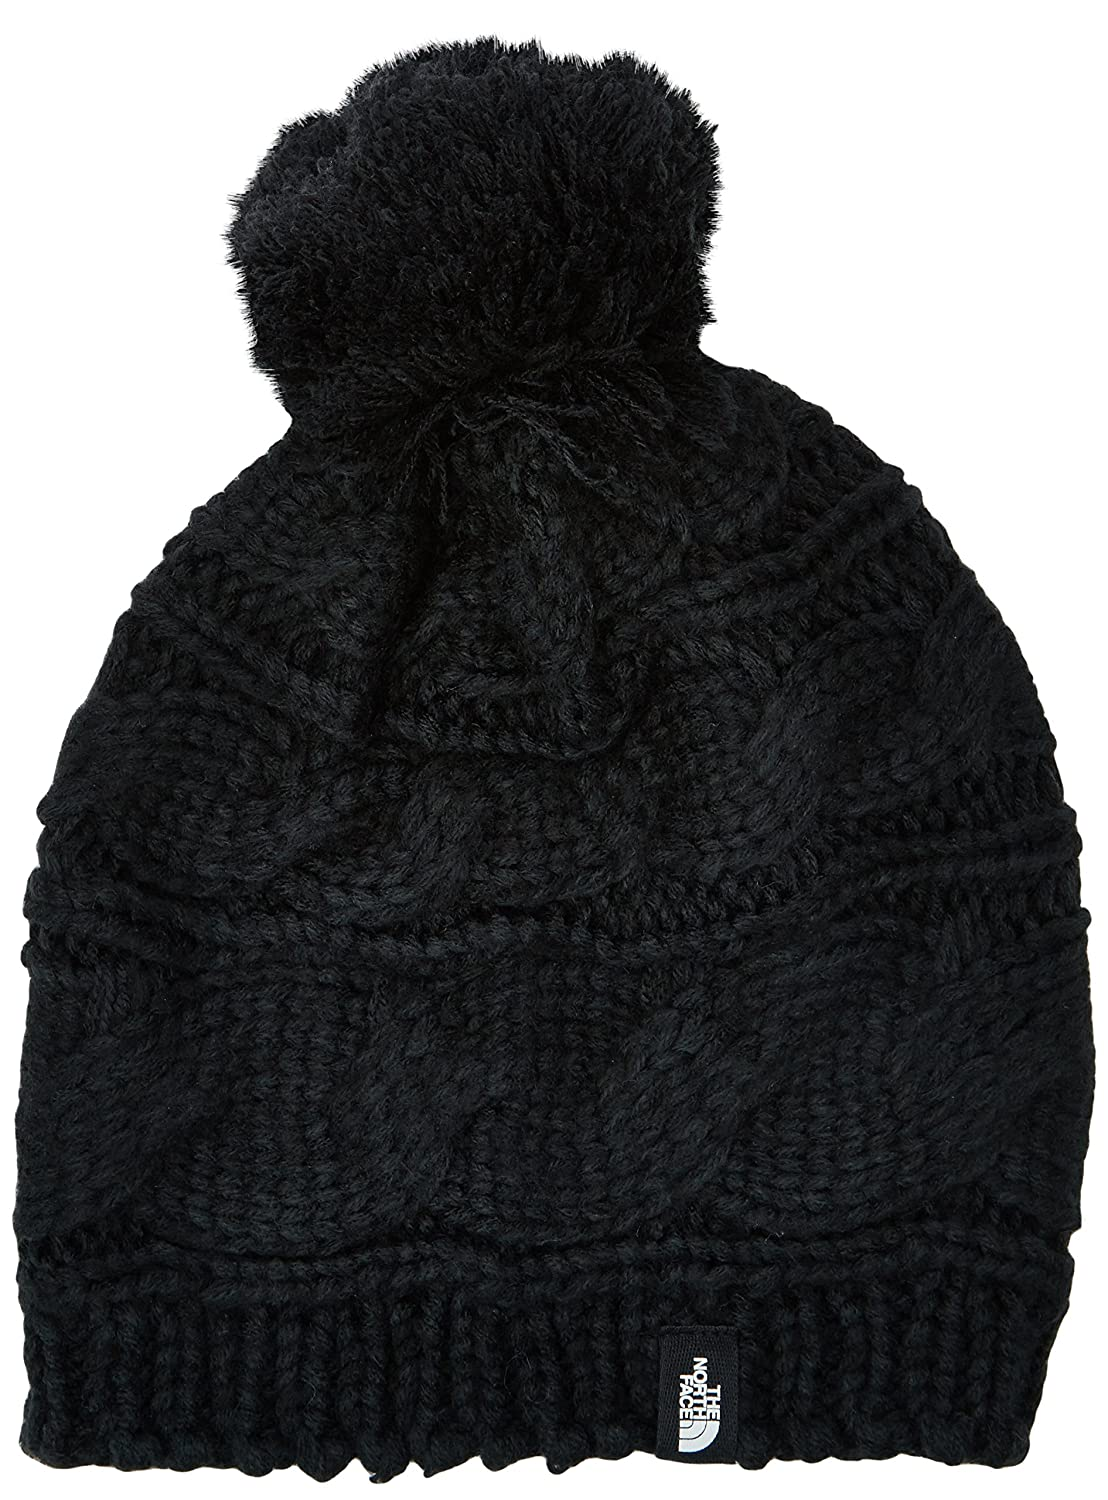 2b74cc637 THE NORTH FACE Women's Triple Cable Beanie